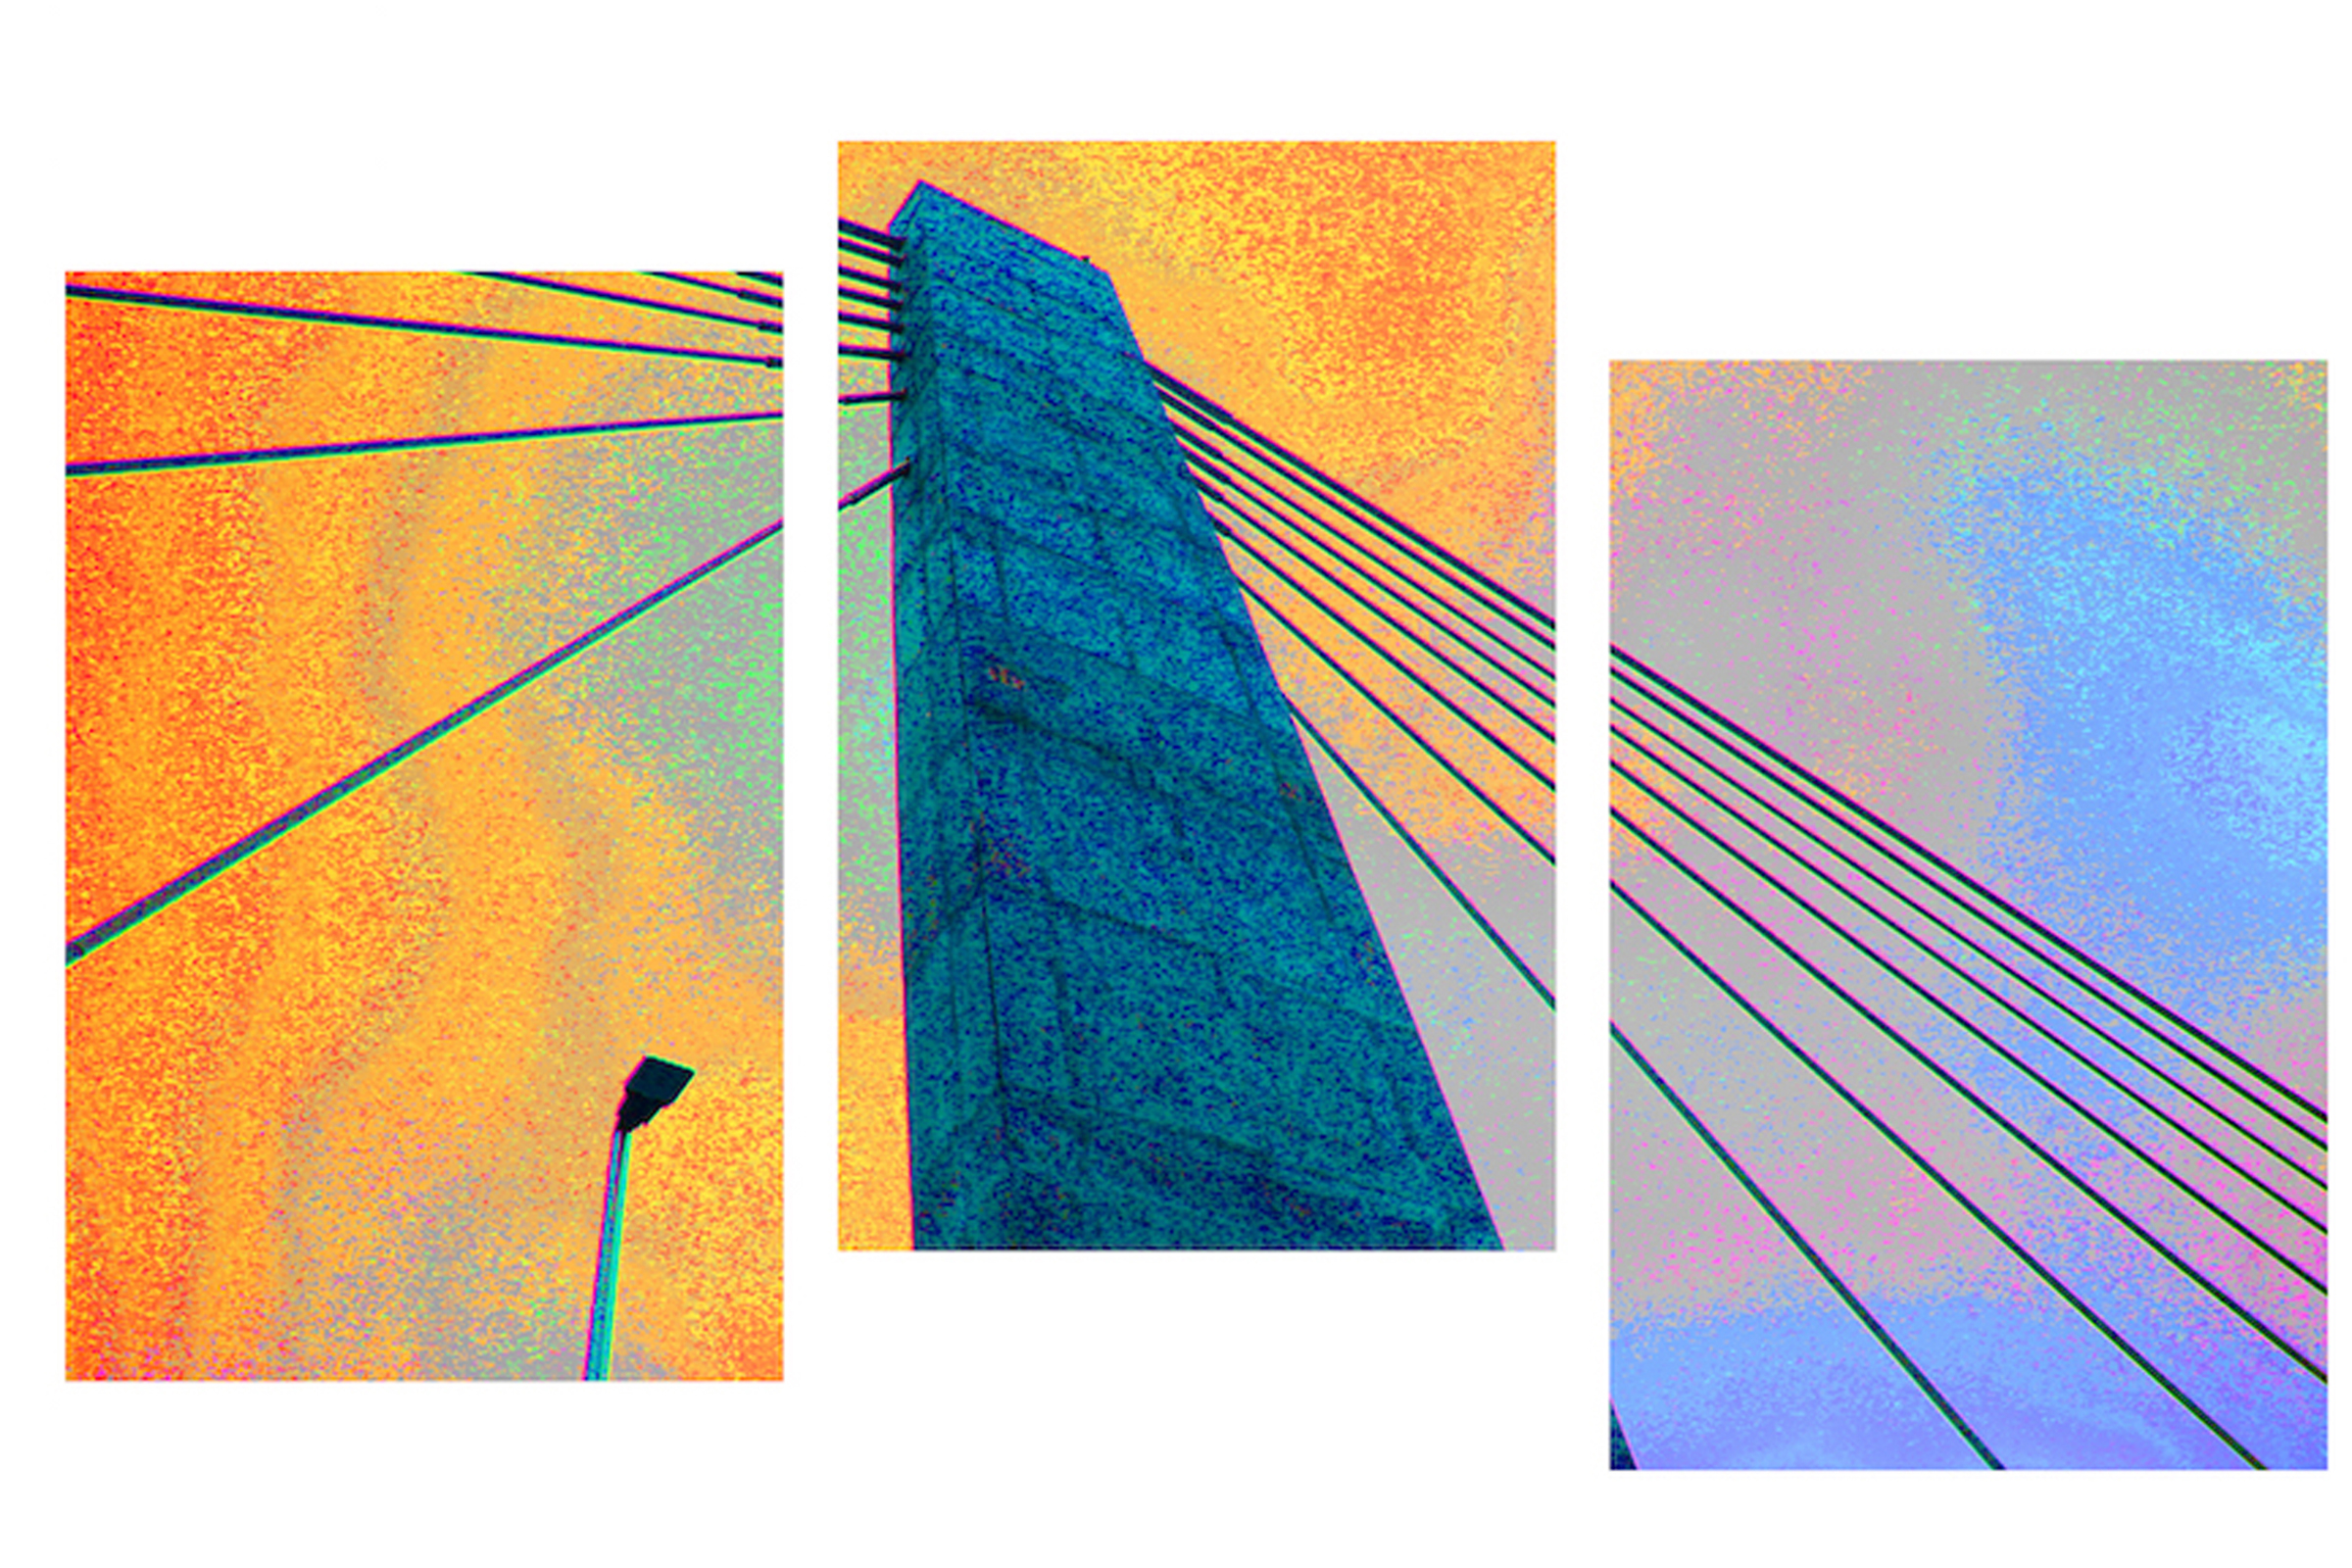 """Suspension I (Lincoln Bridge)"" by Patricia Brock, 36x22in, photography, triptych on acrylic, $575 